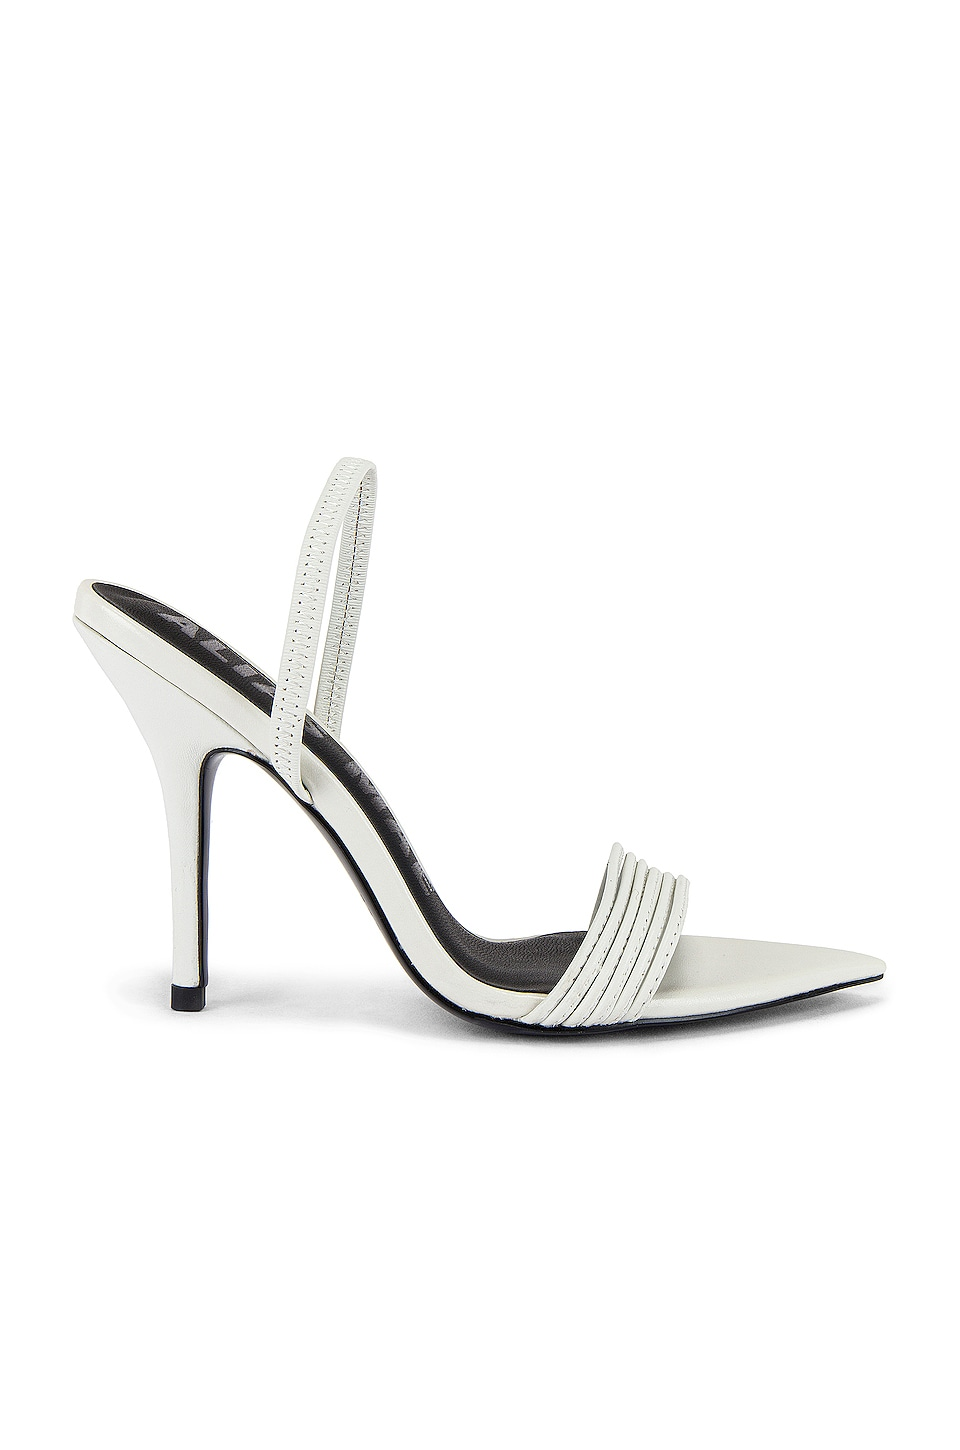 Alias Mae Xanthe Heel in Ivory Leather